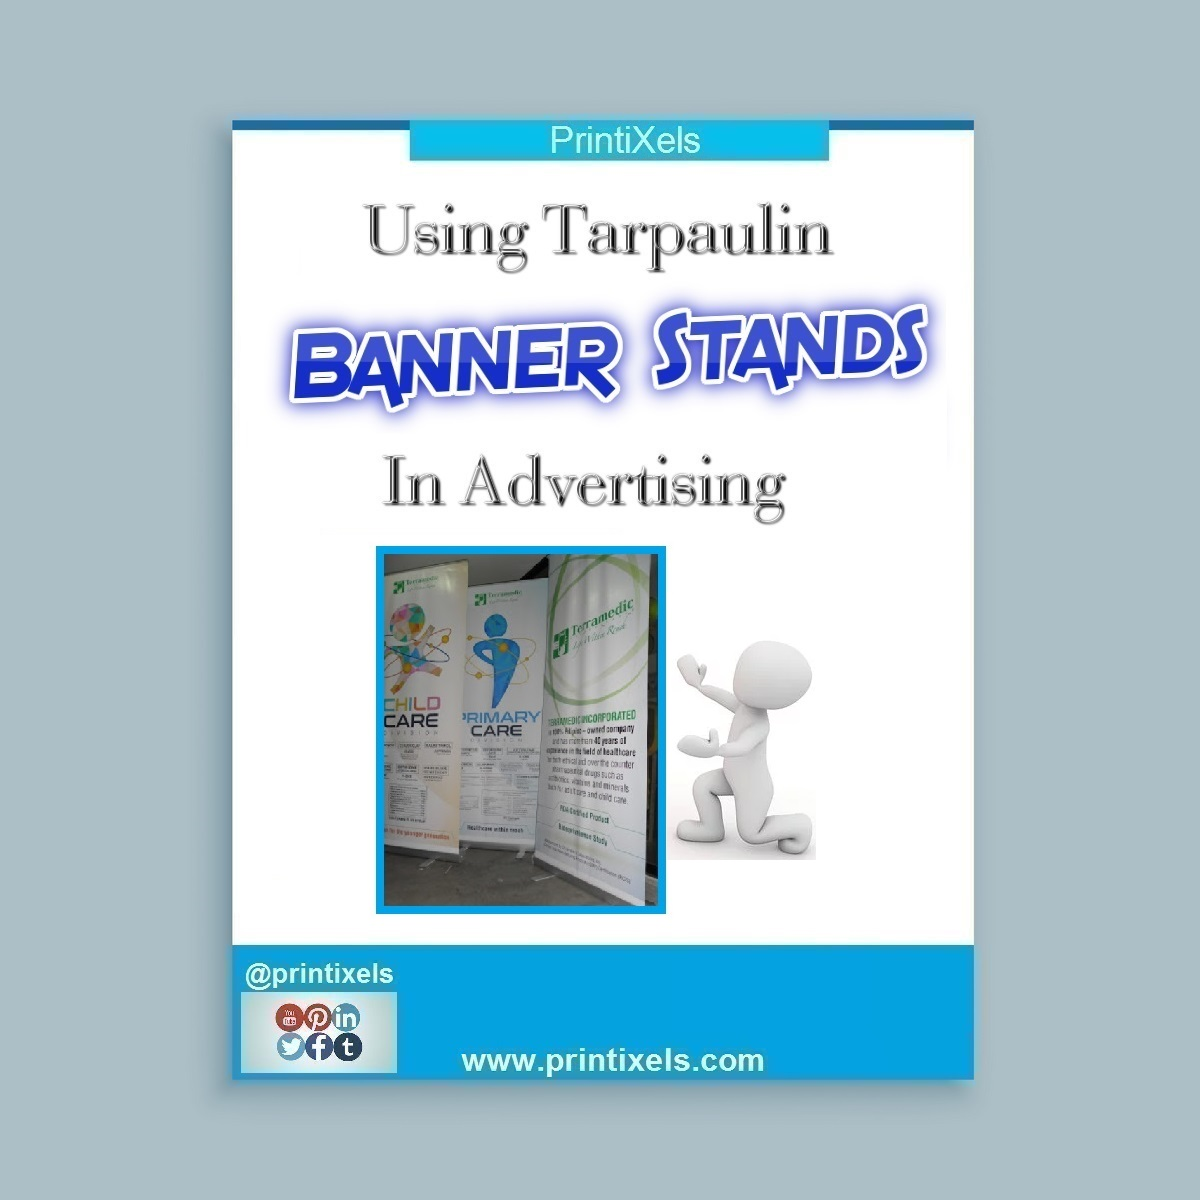 Using Tarpaulin Banner Stands In Advertising